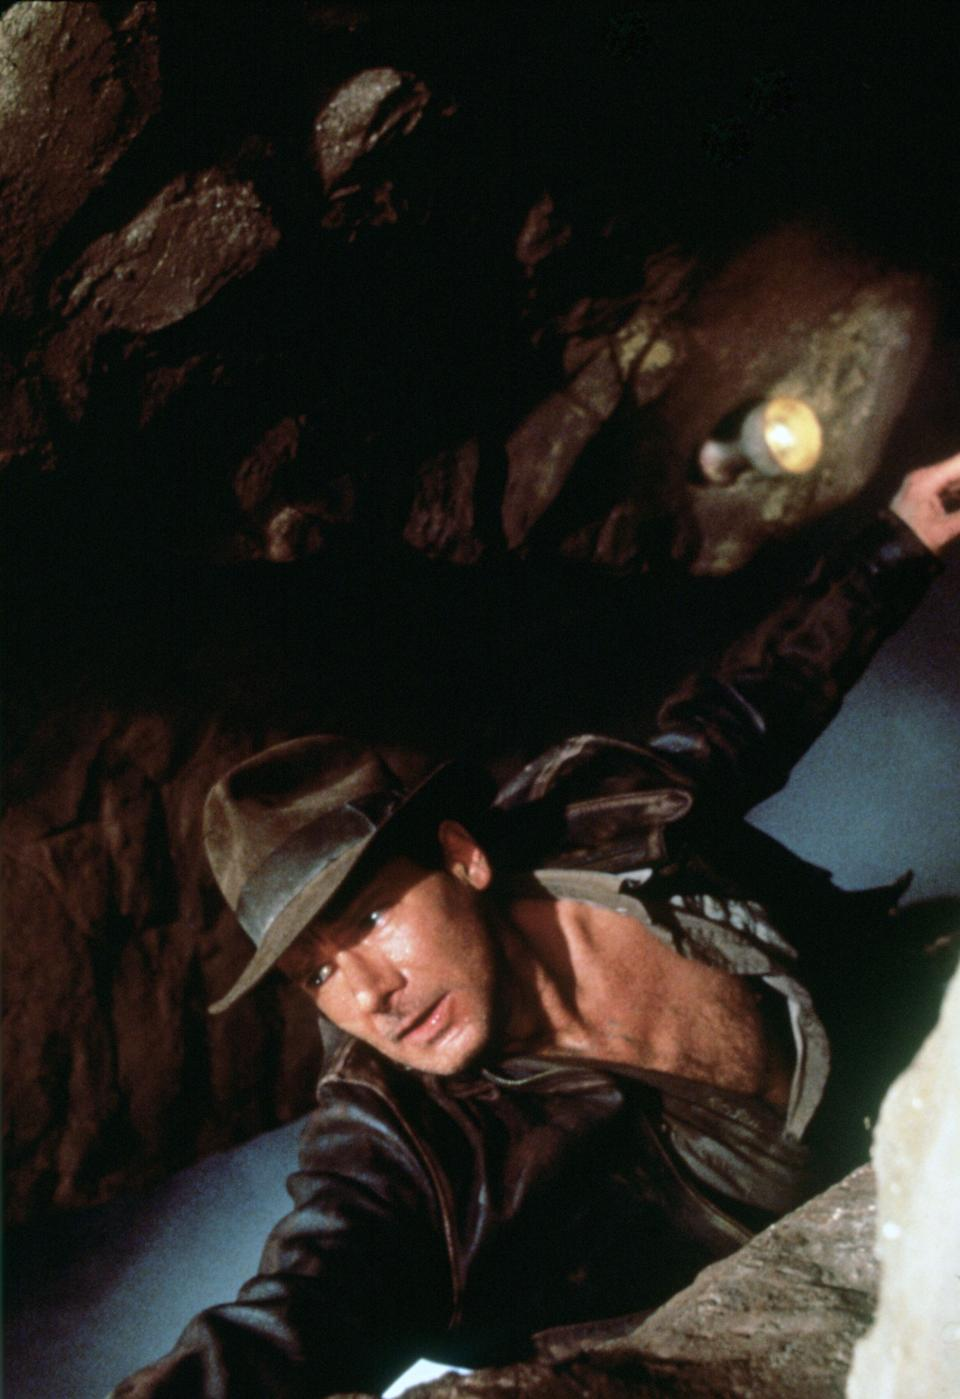 American actor Harrison Ford as the eponymous archaeologist in a scene from the film 'Indiana Jones and the Last Crusade', 1989. Here he hangs from the edge of a ravine while the Holy Grail falls past him into the abyss.  (Photo by Murray Close/Getty Images)